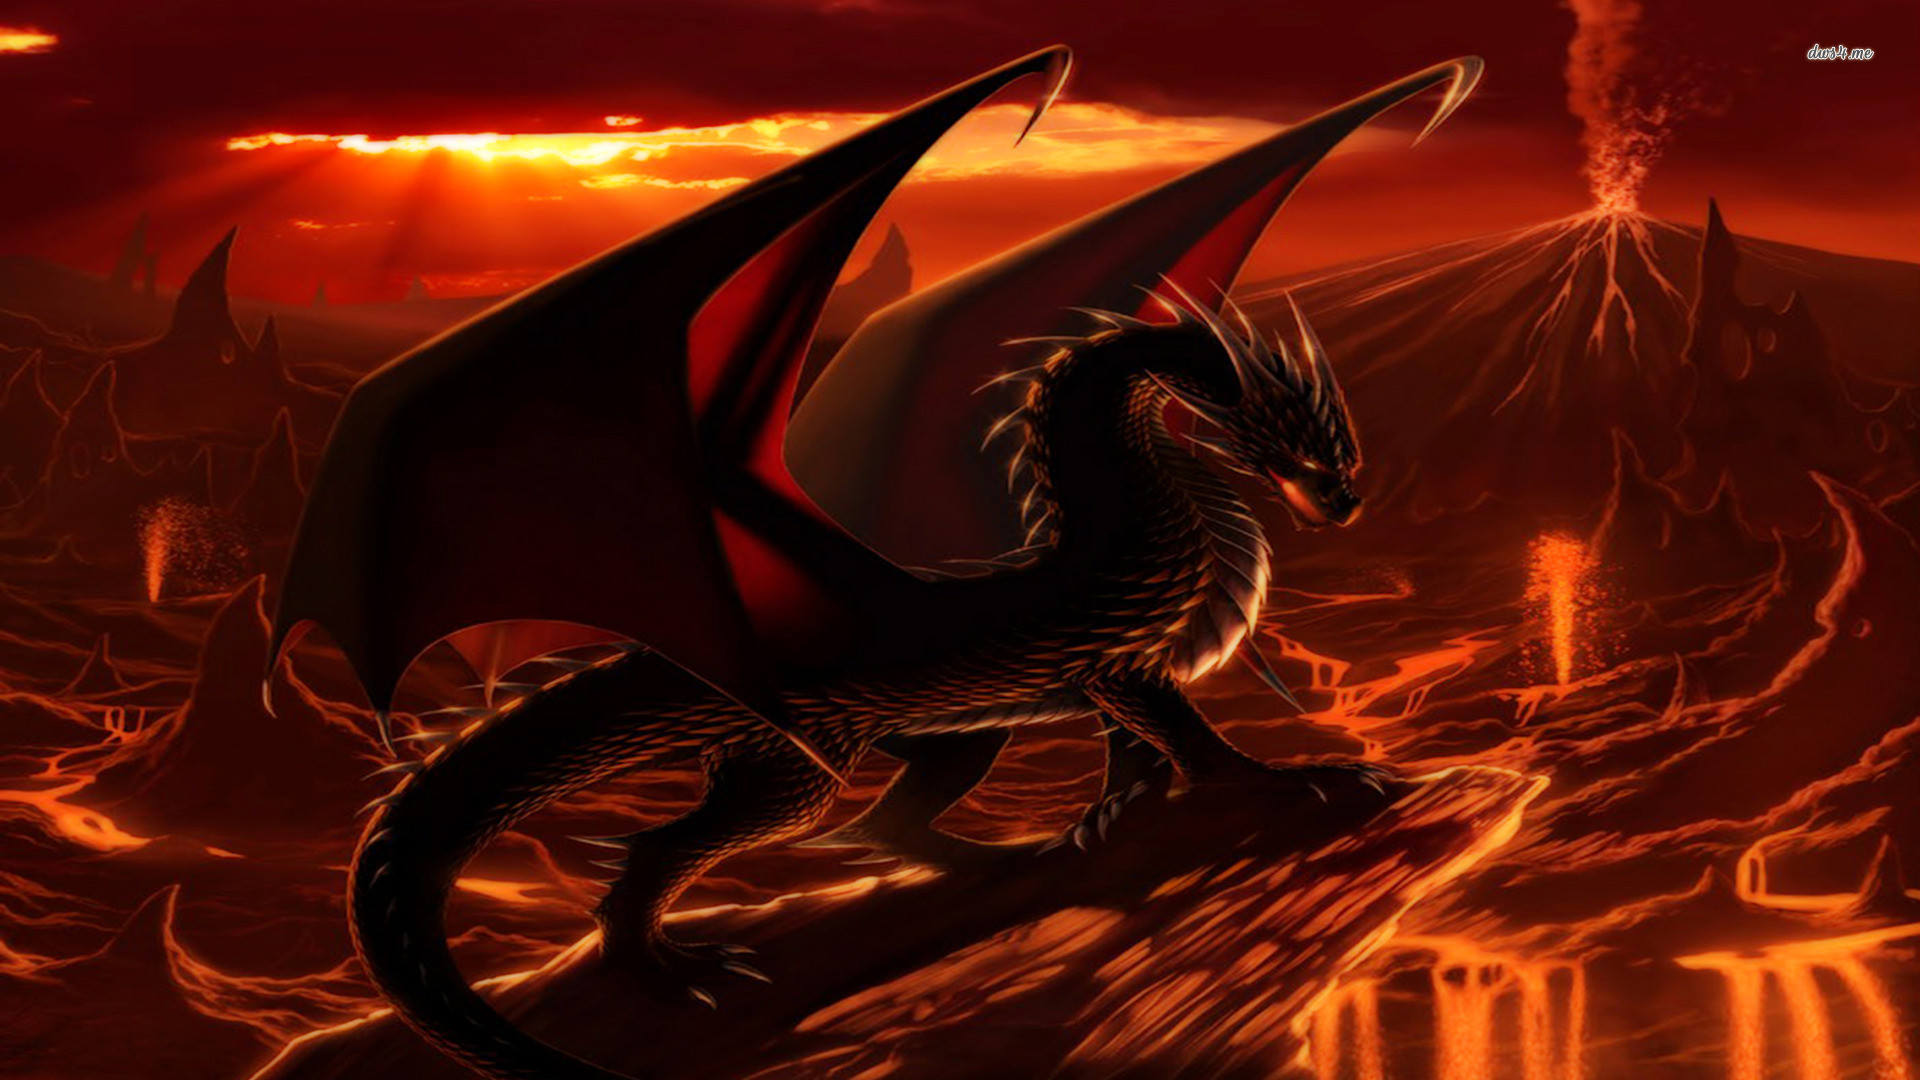 1920x1080 Dragon surrounded by lava Fantasy HD desktop wallpaper, Dragon wallpaper,  Fire wallpaper, Lava wallpaper, Volcano wallpaper - Fantasy no.